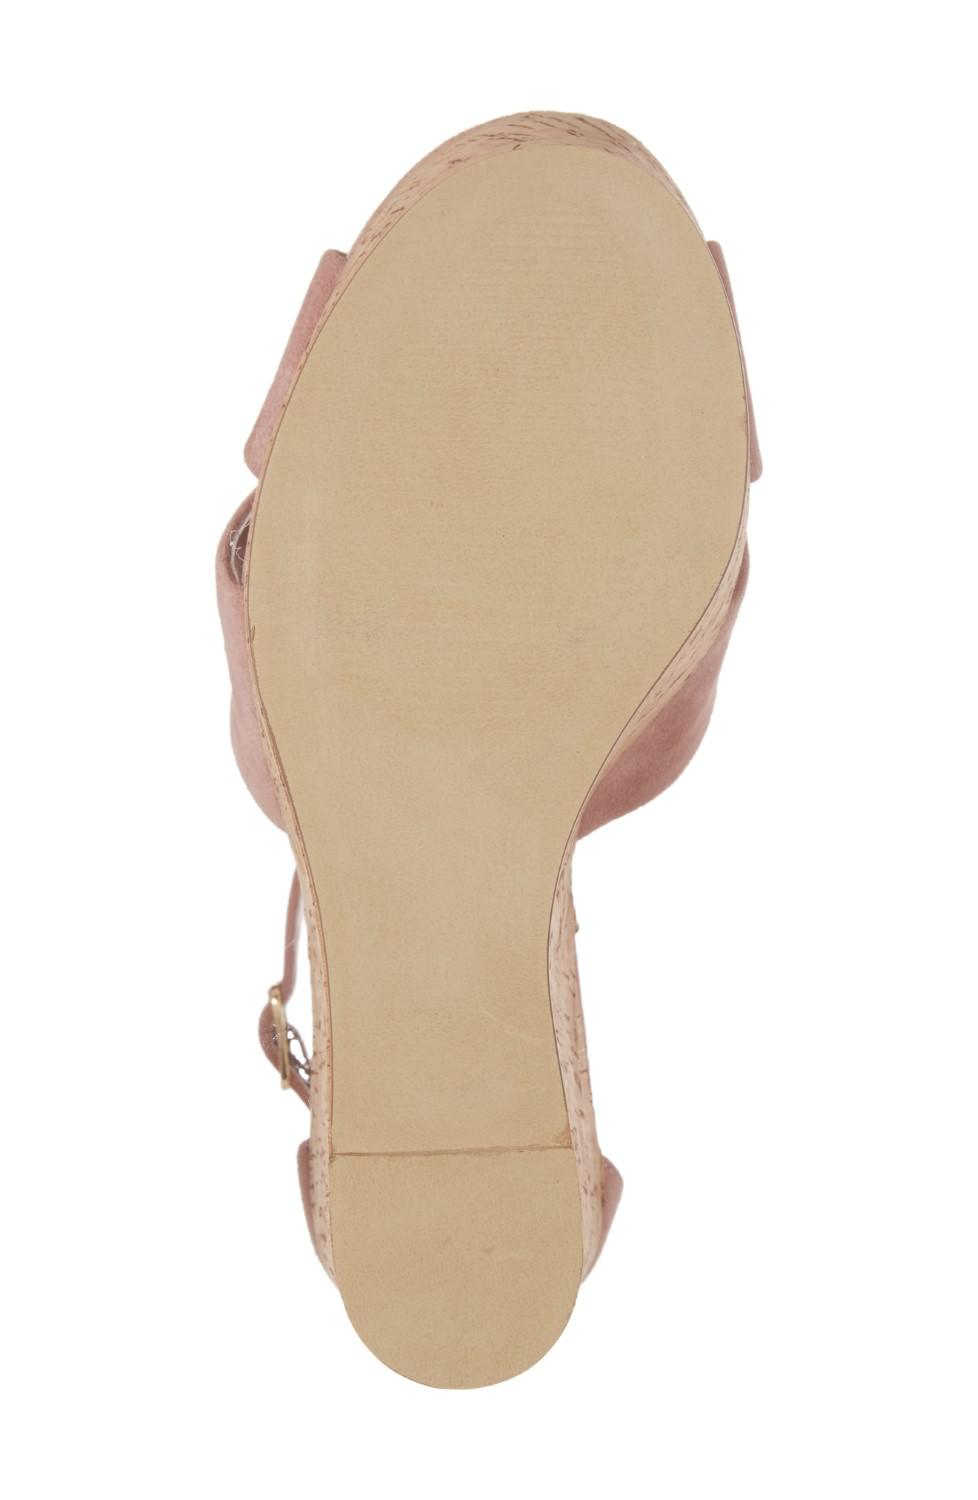 cc703e859c0 Steve Madden - Pink Striking Leather Open Toe Special Occasion Platform  Sandals - Lyst. View fullscreen